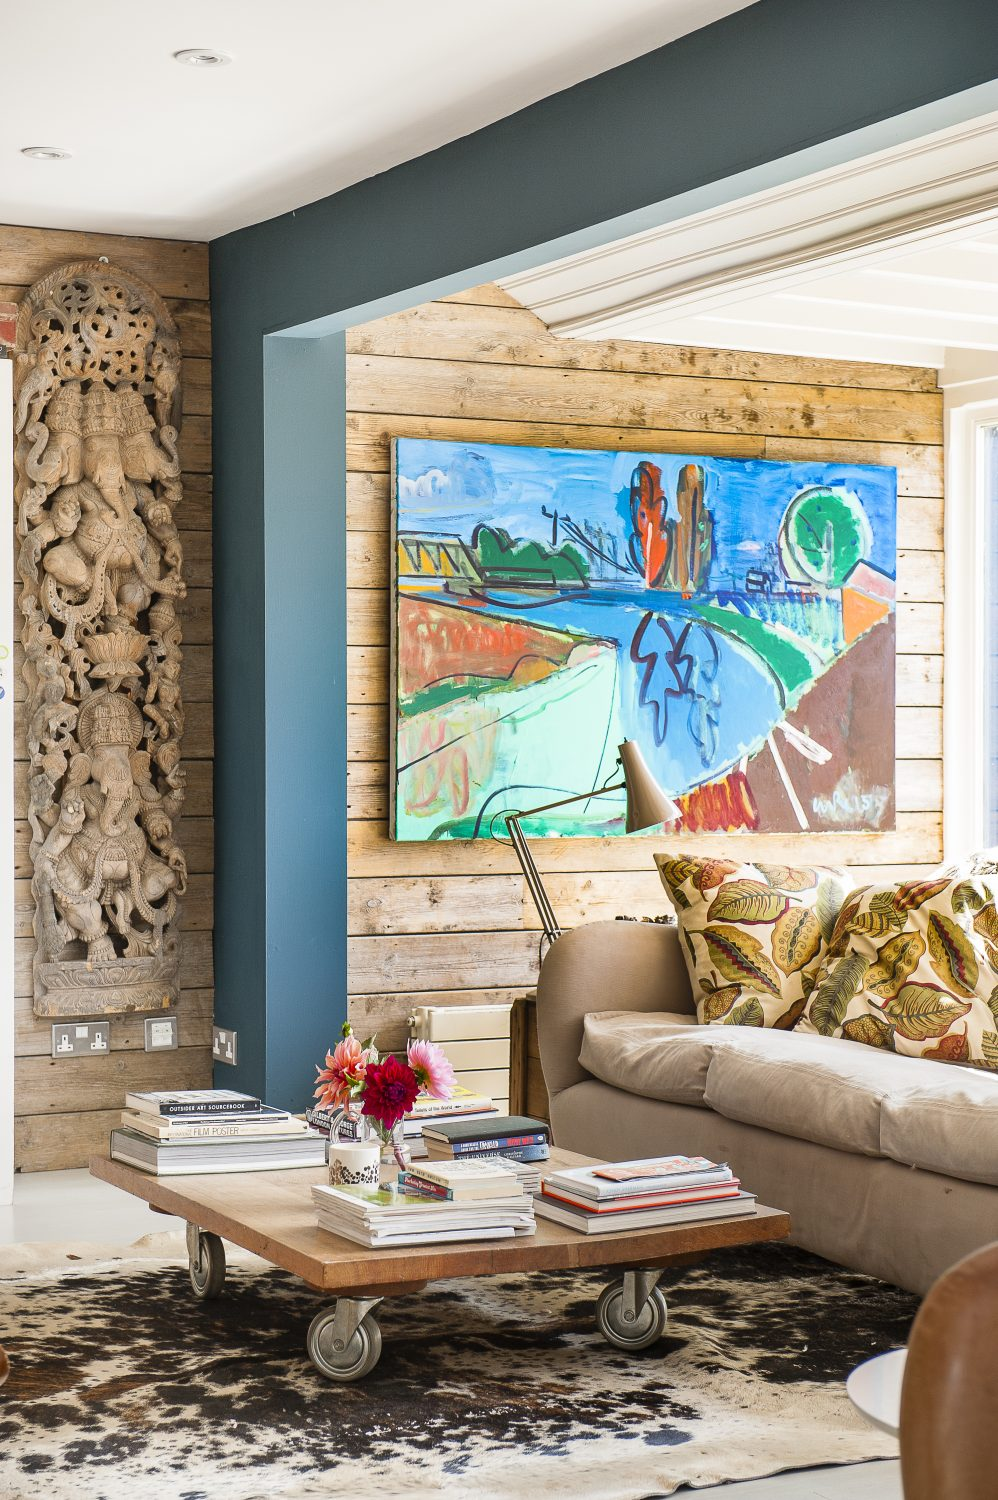 A Luke Hannam painting hangs in the sitting room